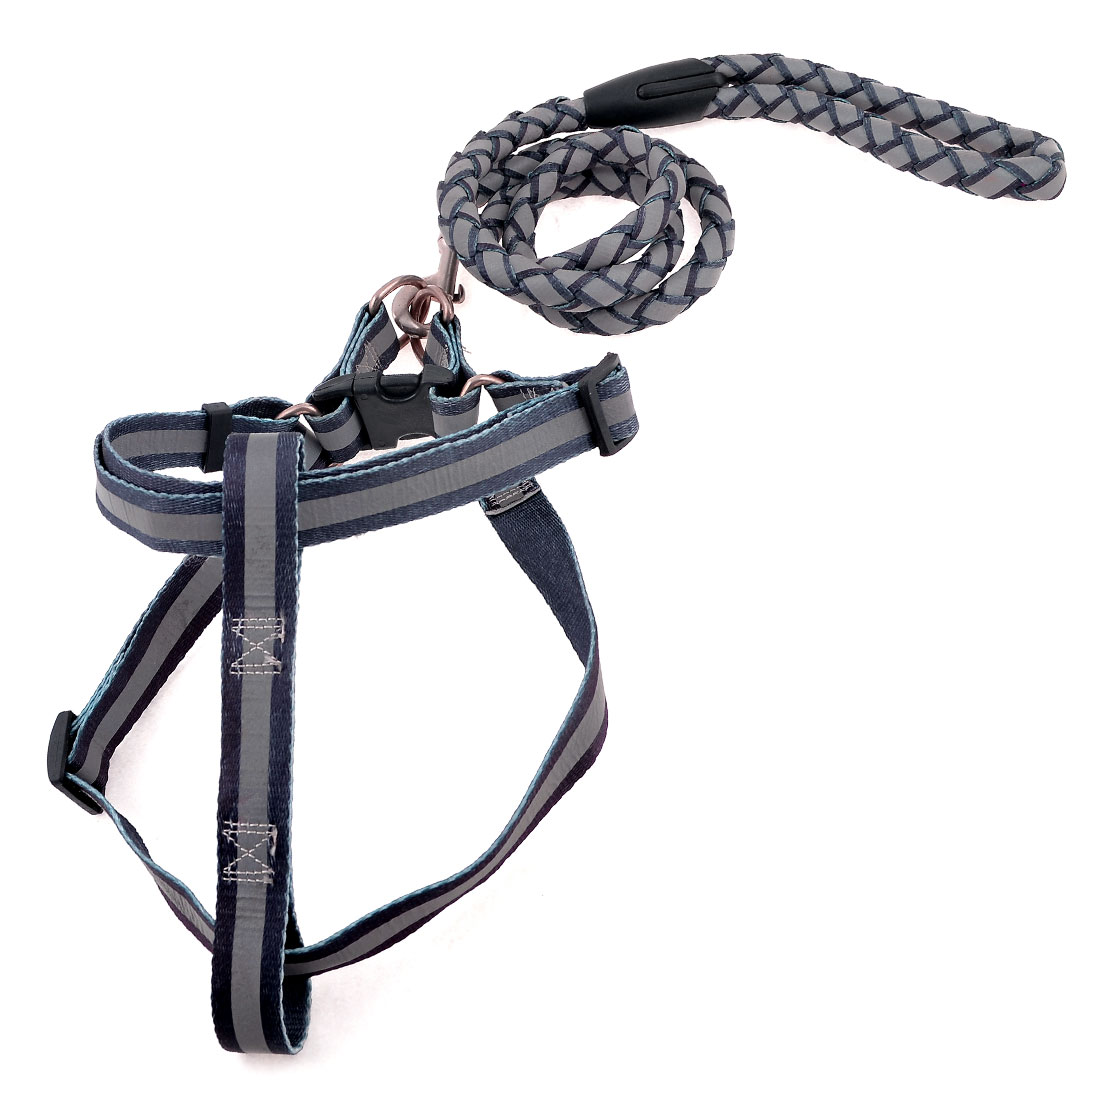 Brown Gray Nylon Traction Rope Adjustable Reflective Dog Harness Leash Lead